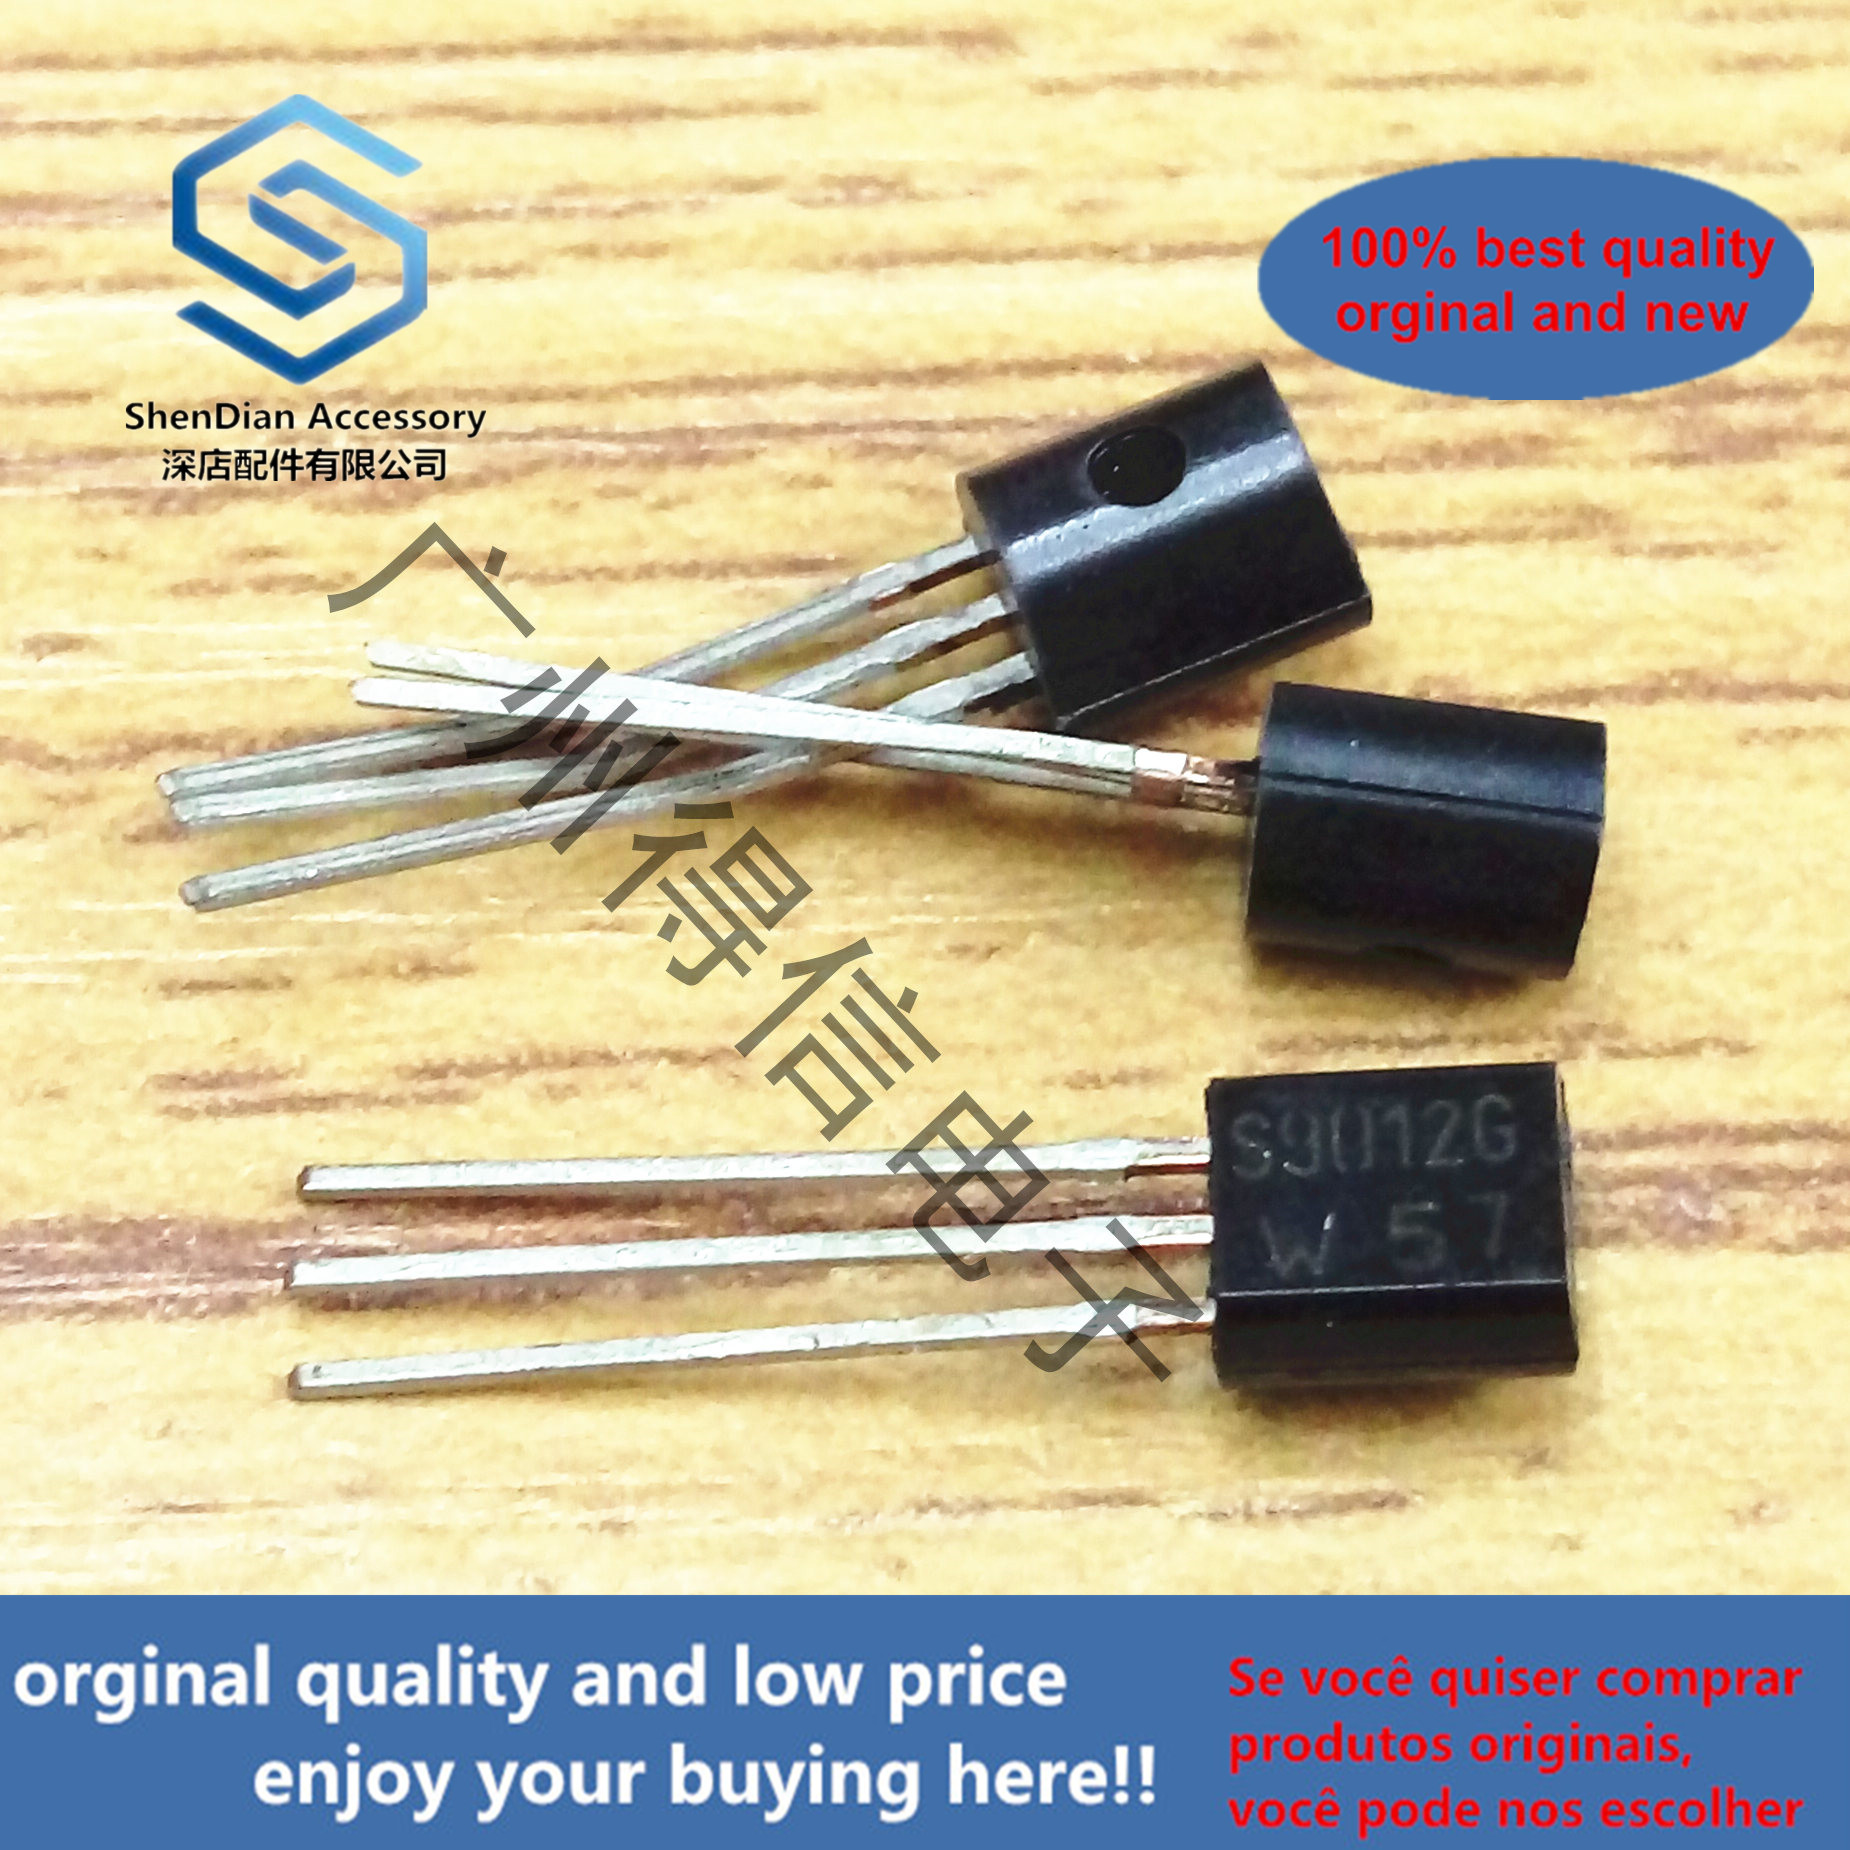 50pcs 100% Orginal New PSS9012G S9012 High Current Imported Triode TO-92 Real Photo